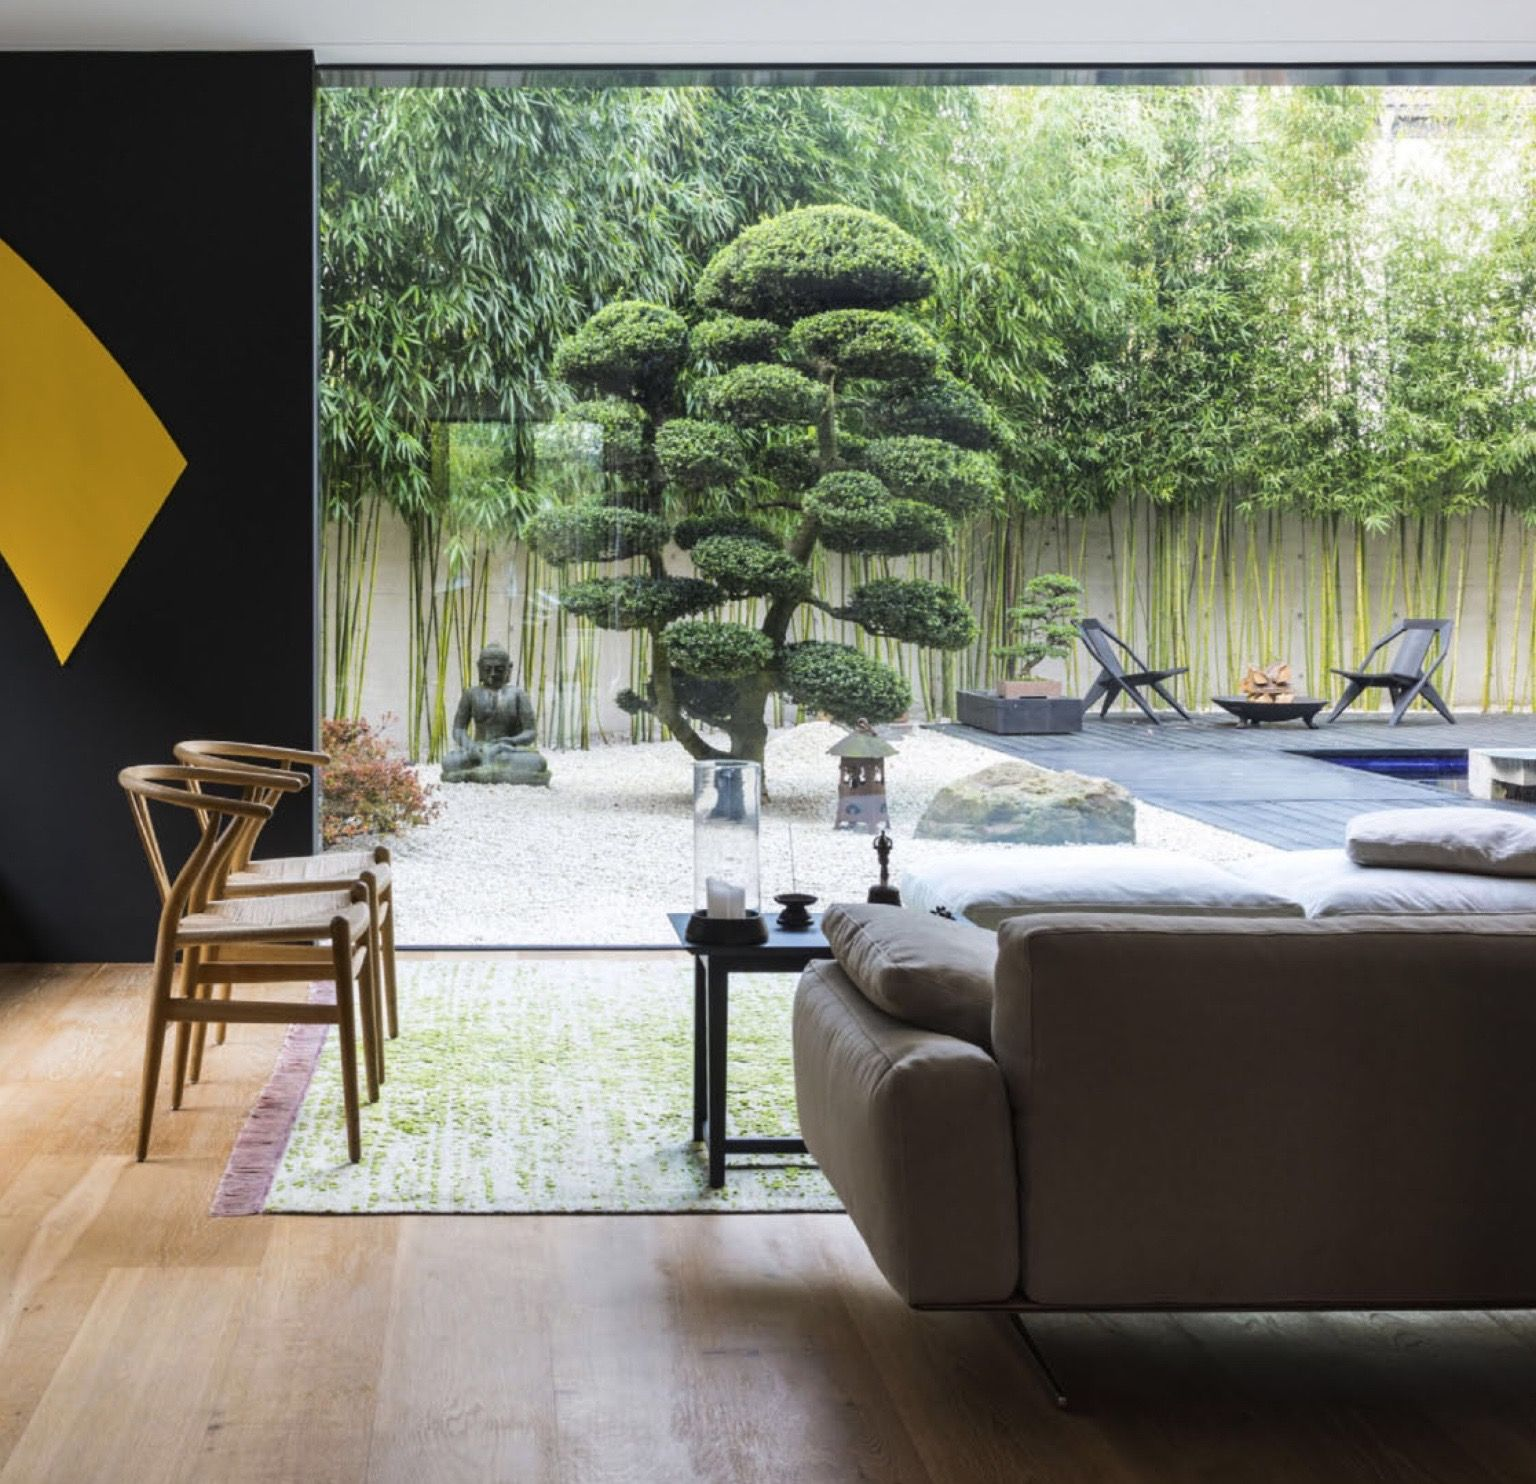 A Room With A Zen Garden View In Cologne, Germany | Elle Decor UK,